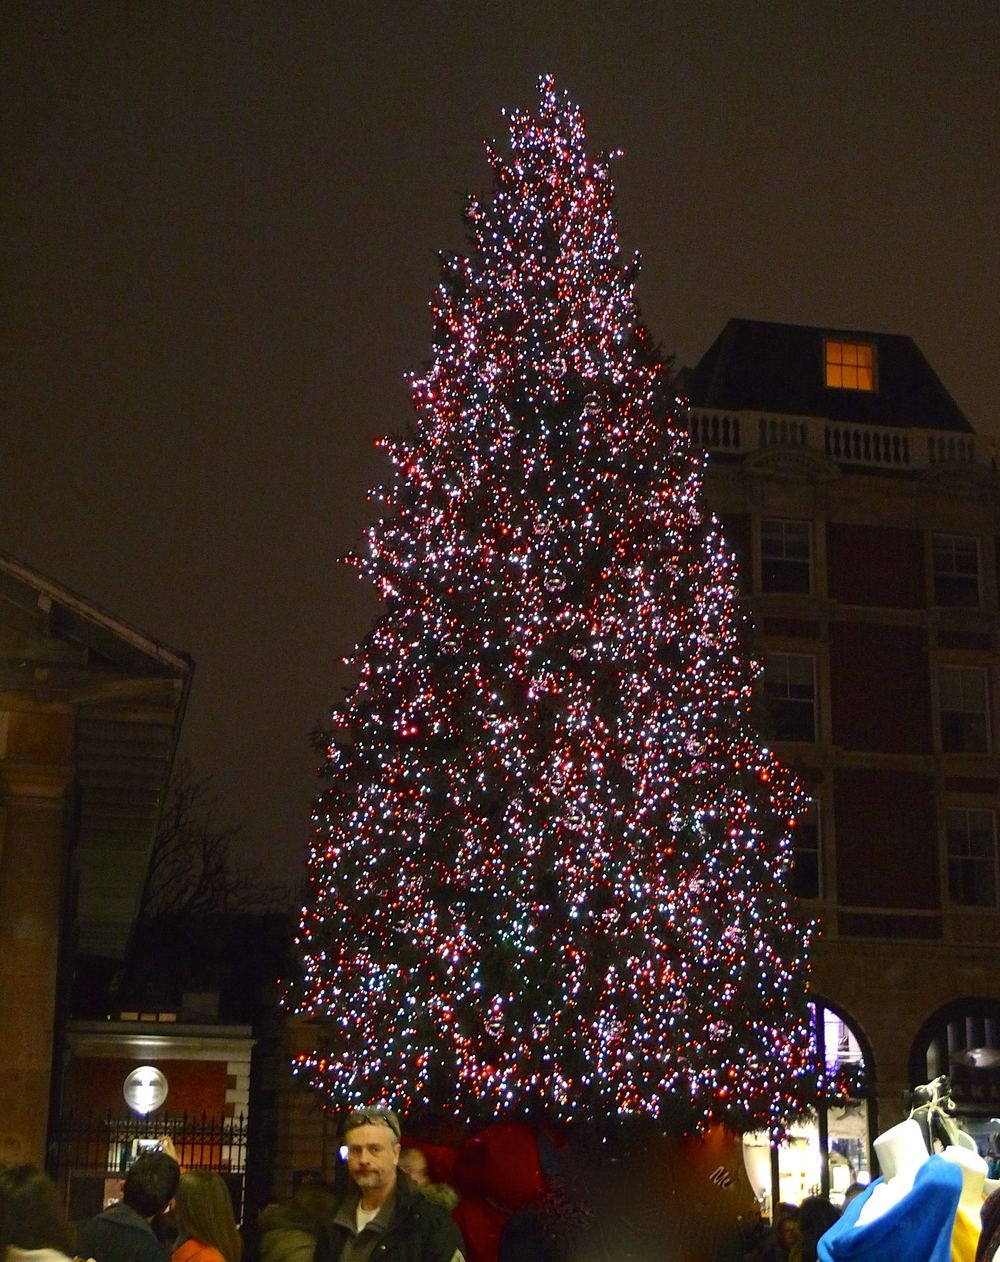 COVENT GARDEN'S CHRISTMAS TREE (WITH AN UNKNOWN GENTLEMAN!)